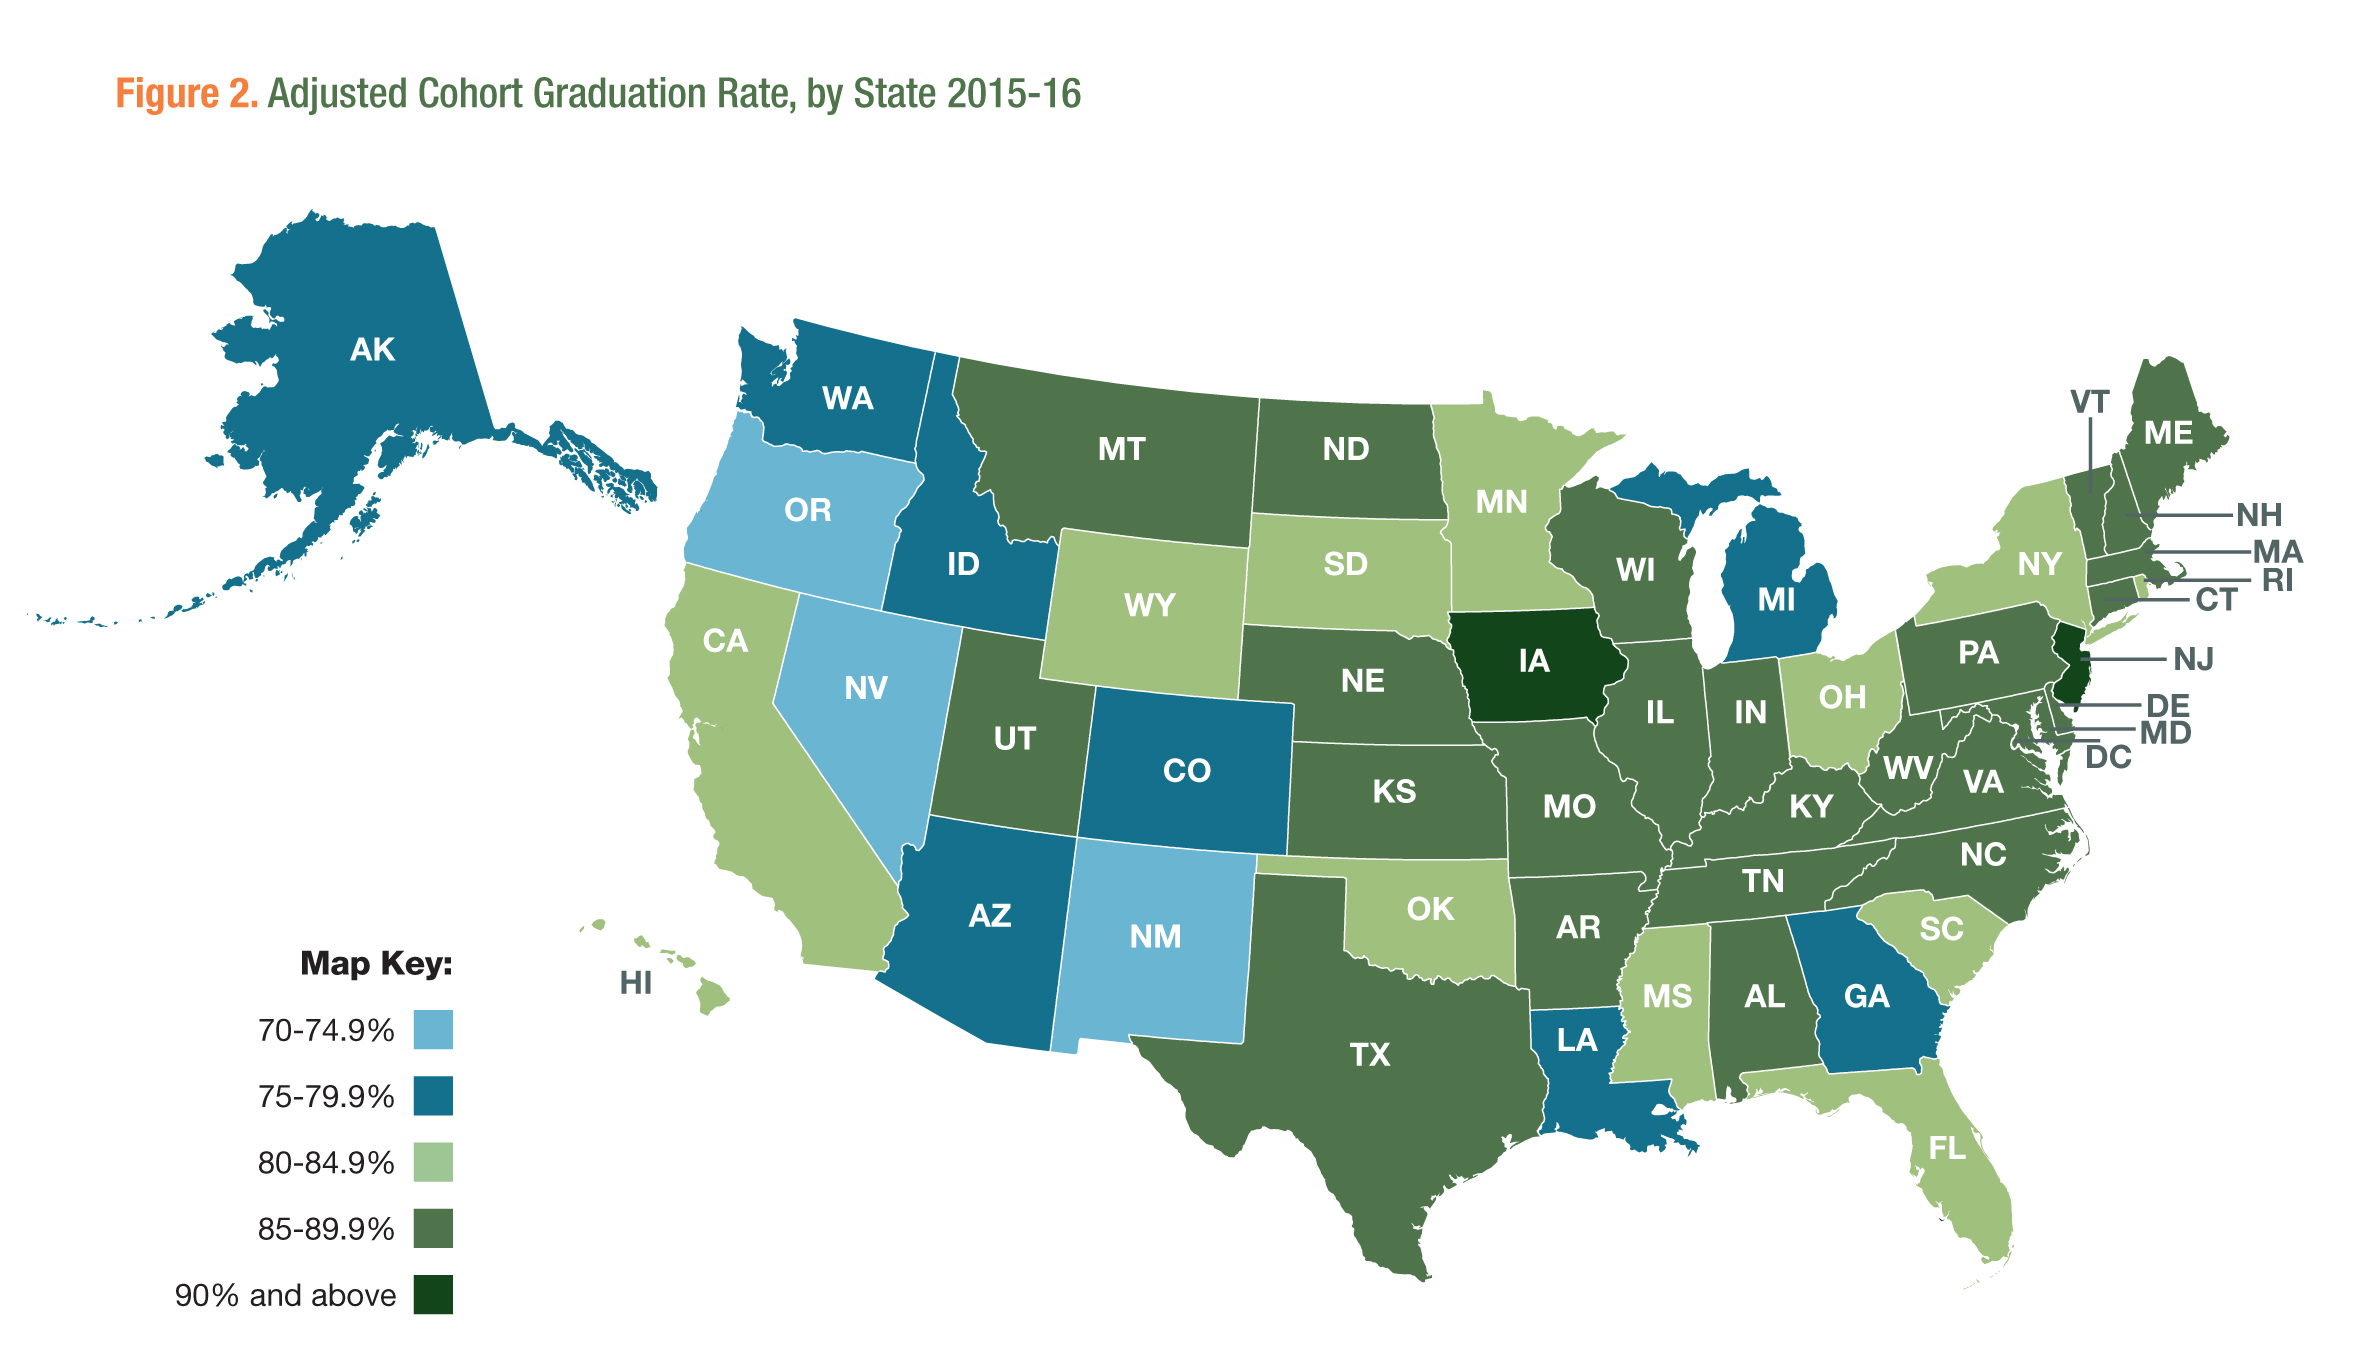 Adjusted Cohort Graduation Rate by State 2015-16